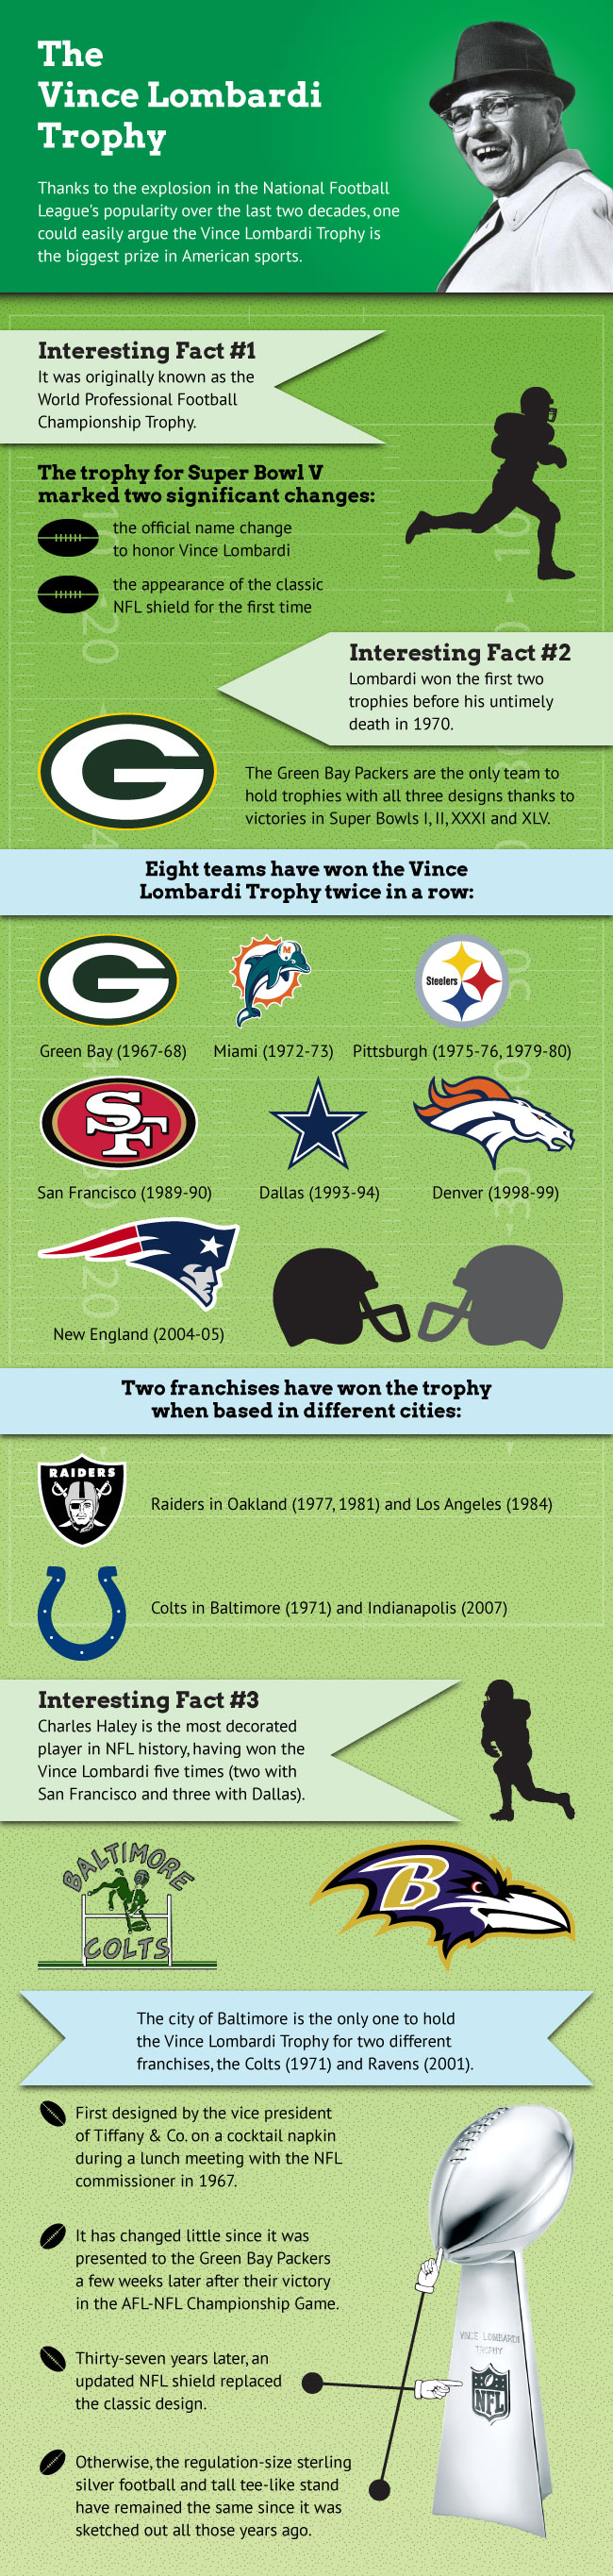 Infographic of the Vince Lombardi Trophy